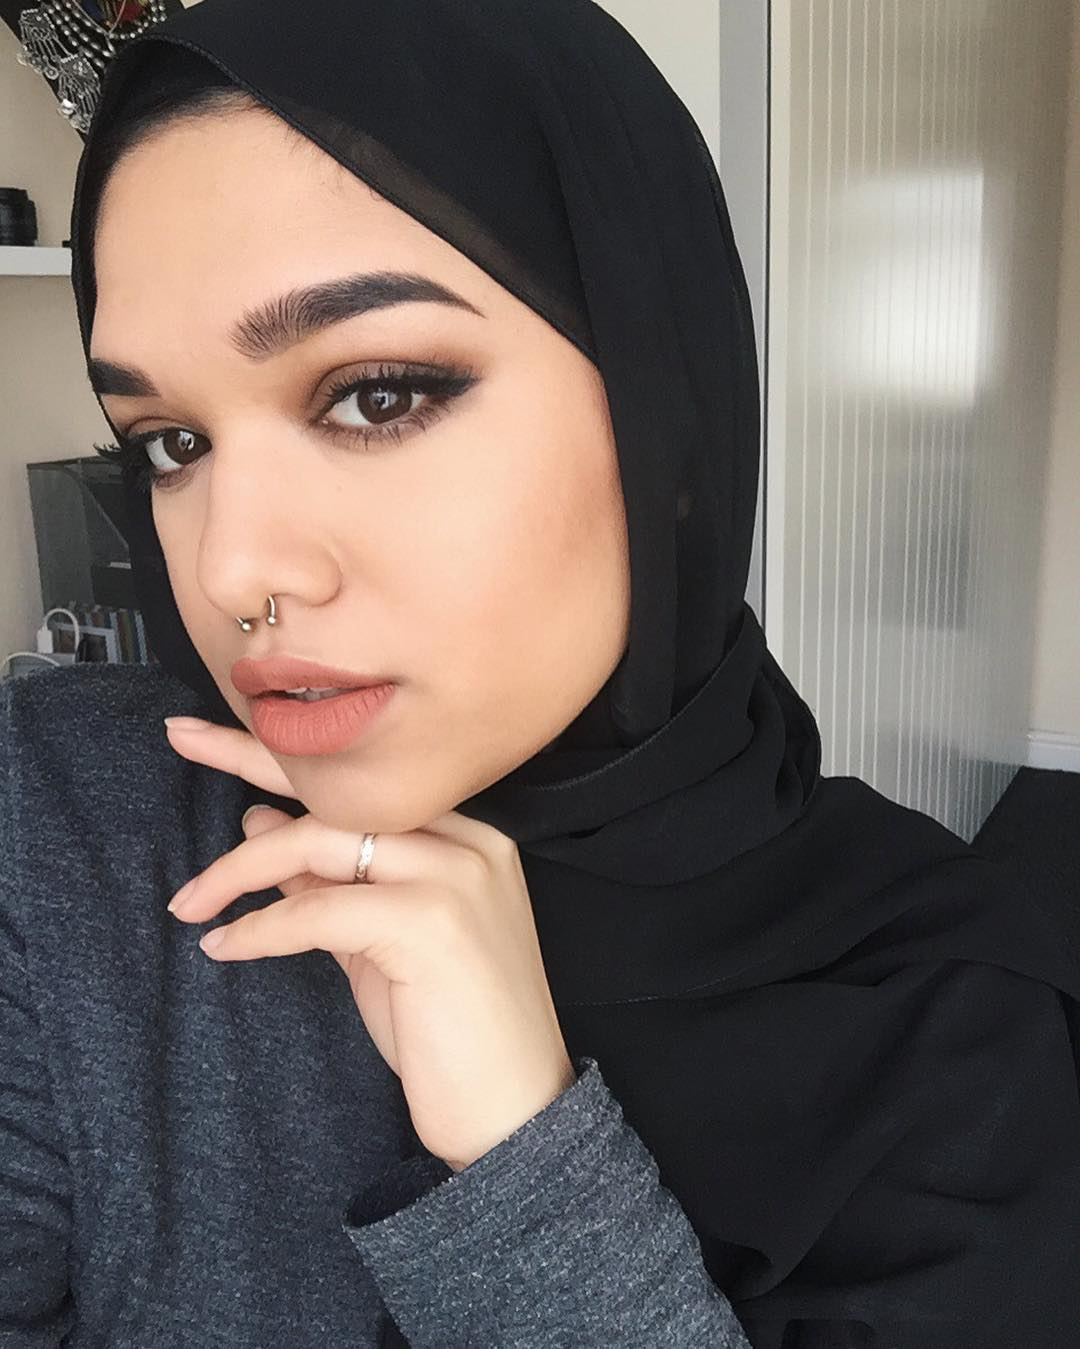 unbelievably_beautiful_women_wearing_hijabs_on_ig_20